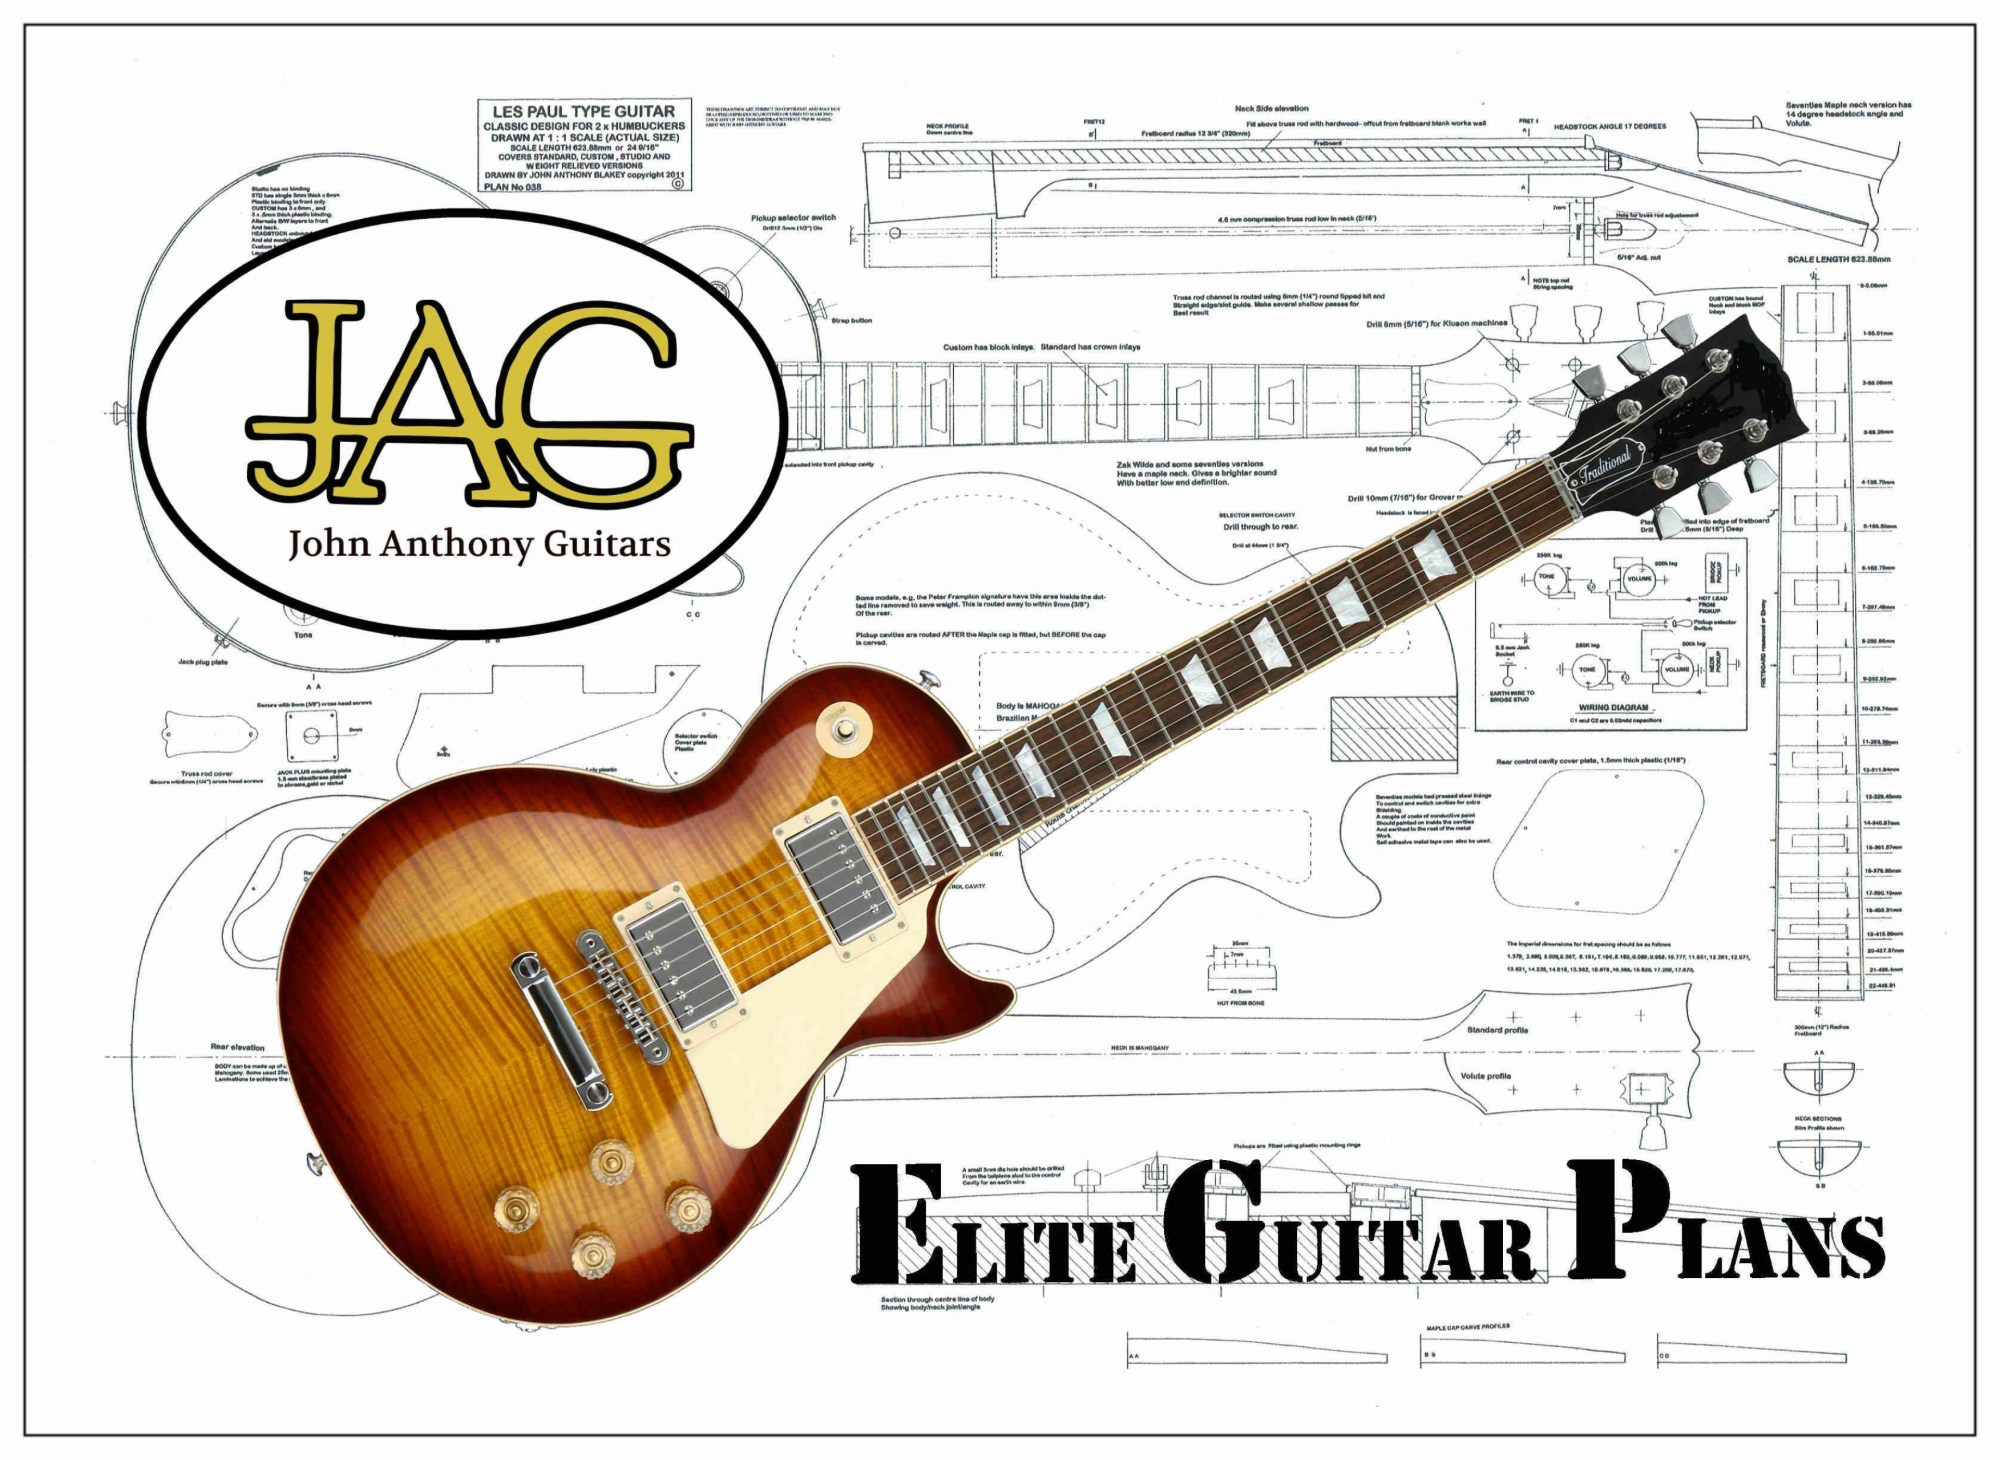 hight resolution of  57 classic wiring diagram gibson wiring kit les paul guitar drawing at getdrawings com free for personal use gibson guitar wiring